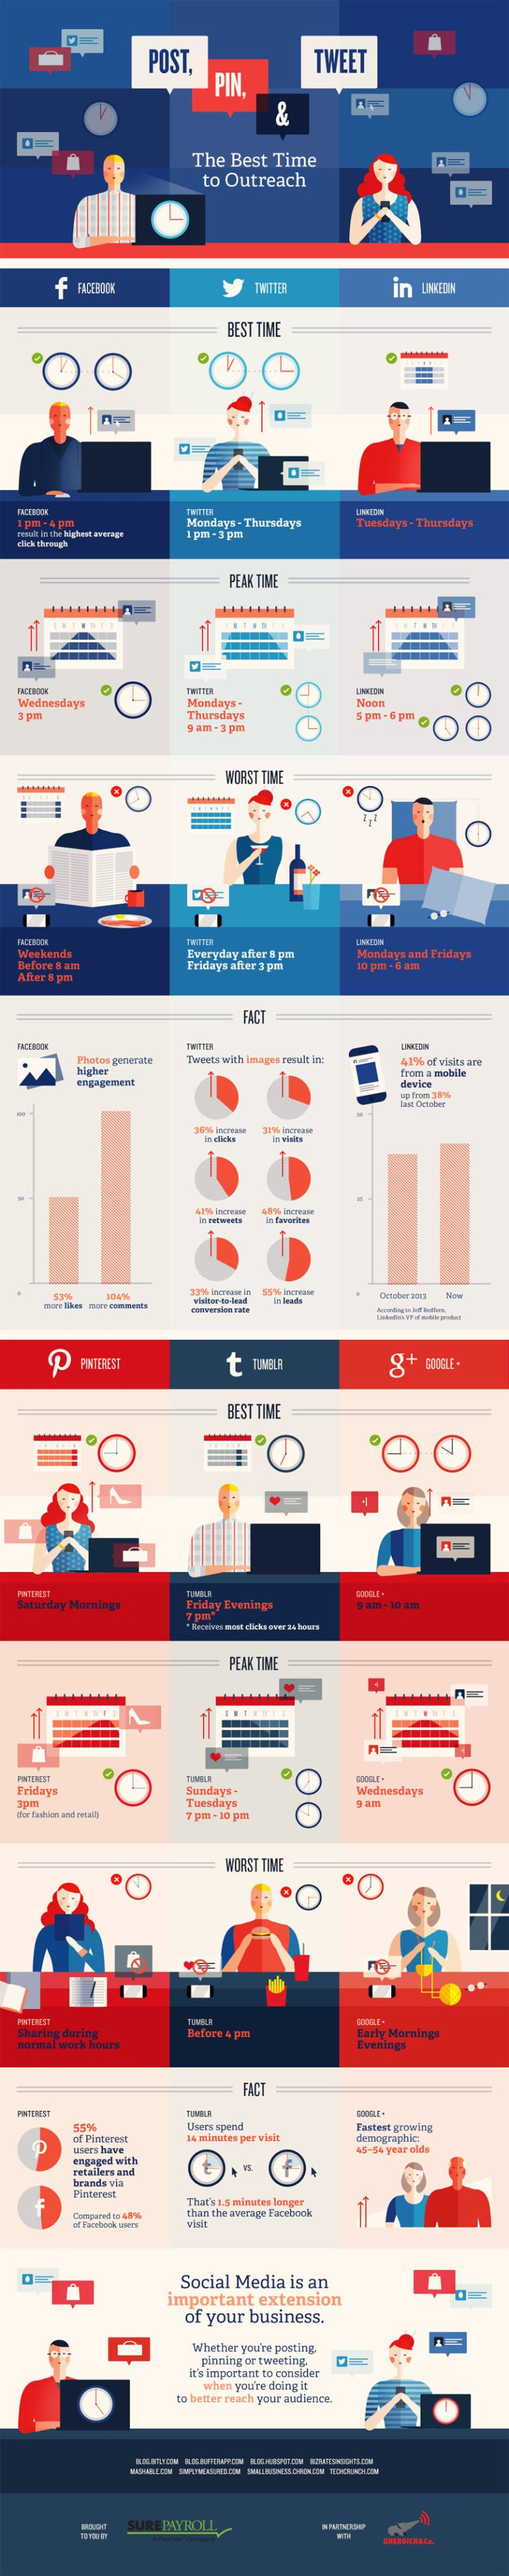 Social media posting time infographic